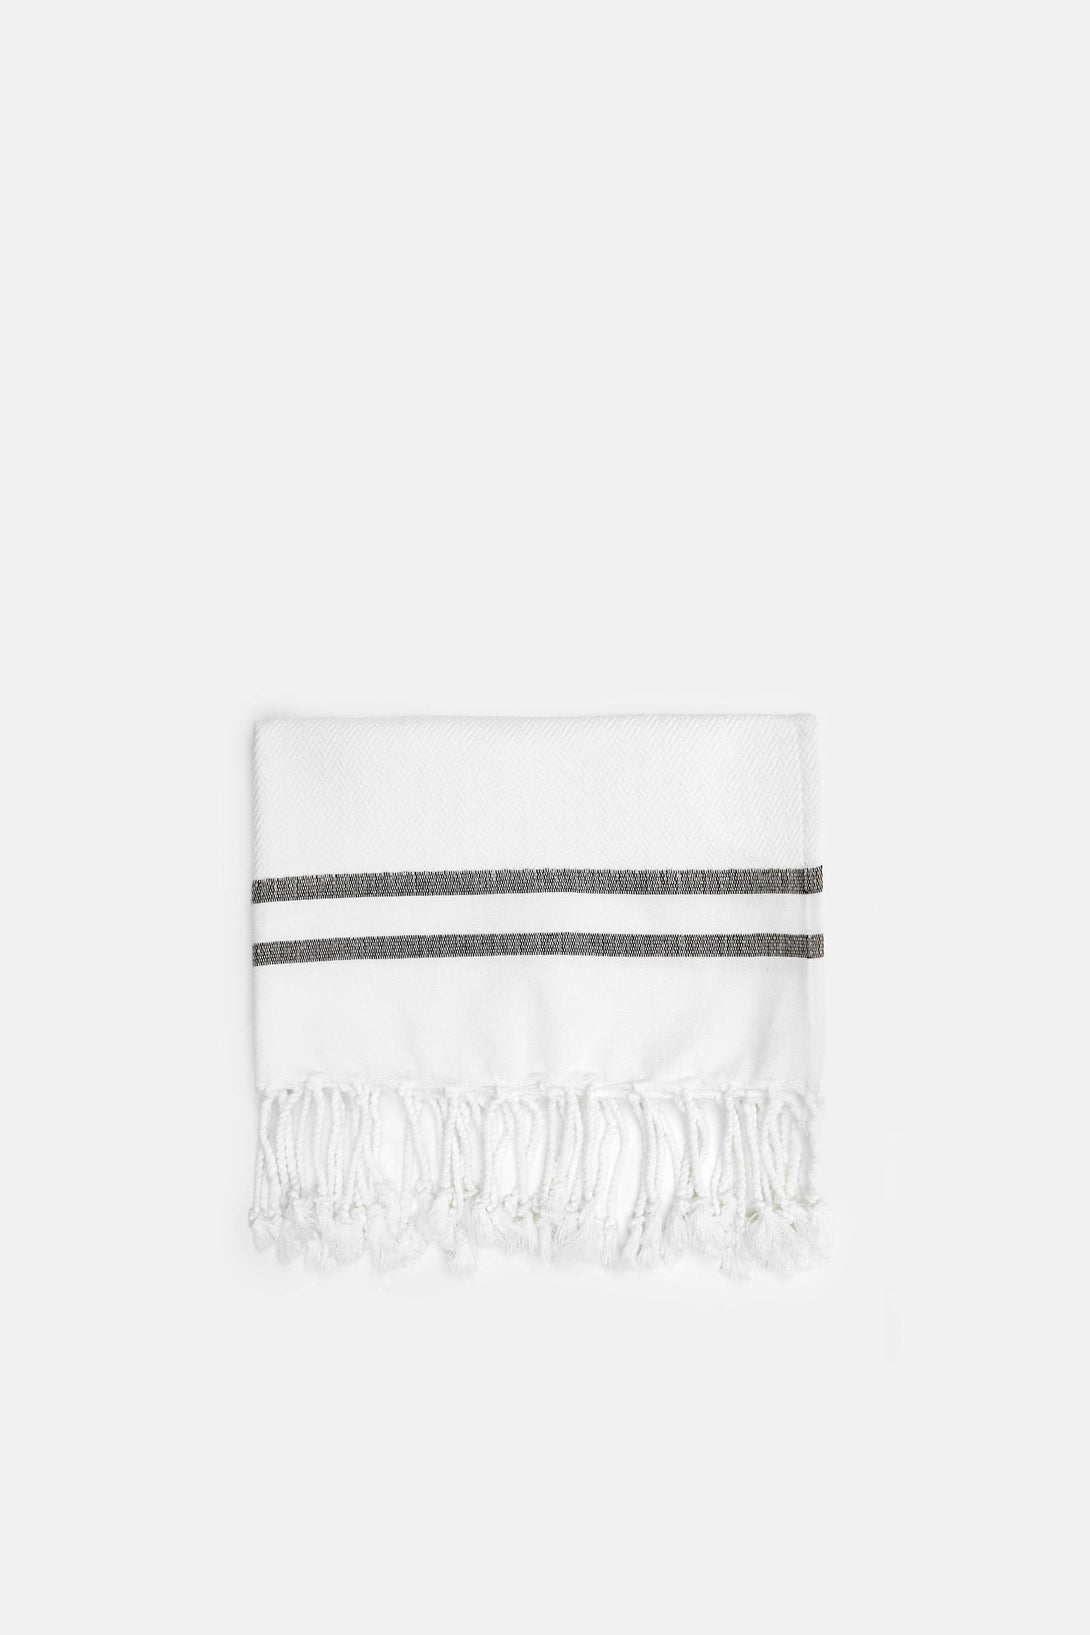 Herringbone Guest Towel with Two Stripes - White/Black